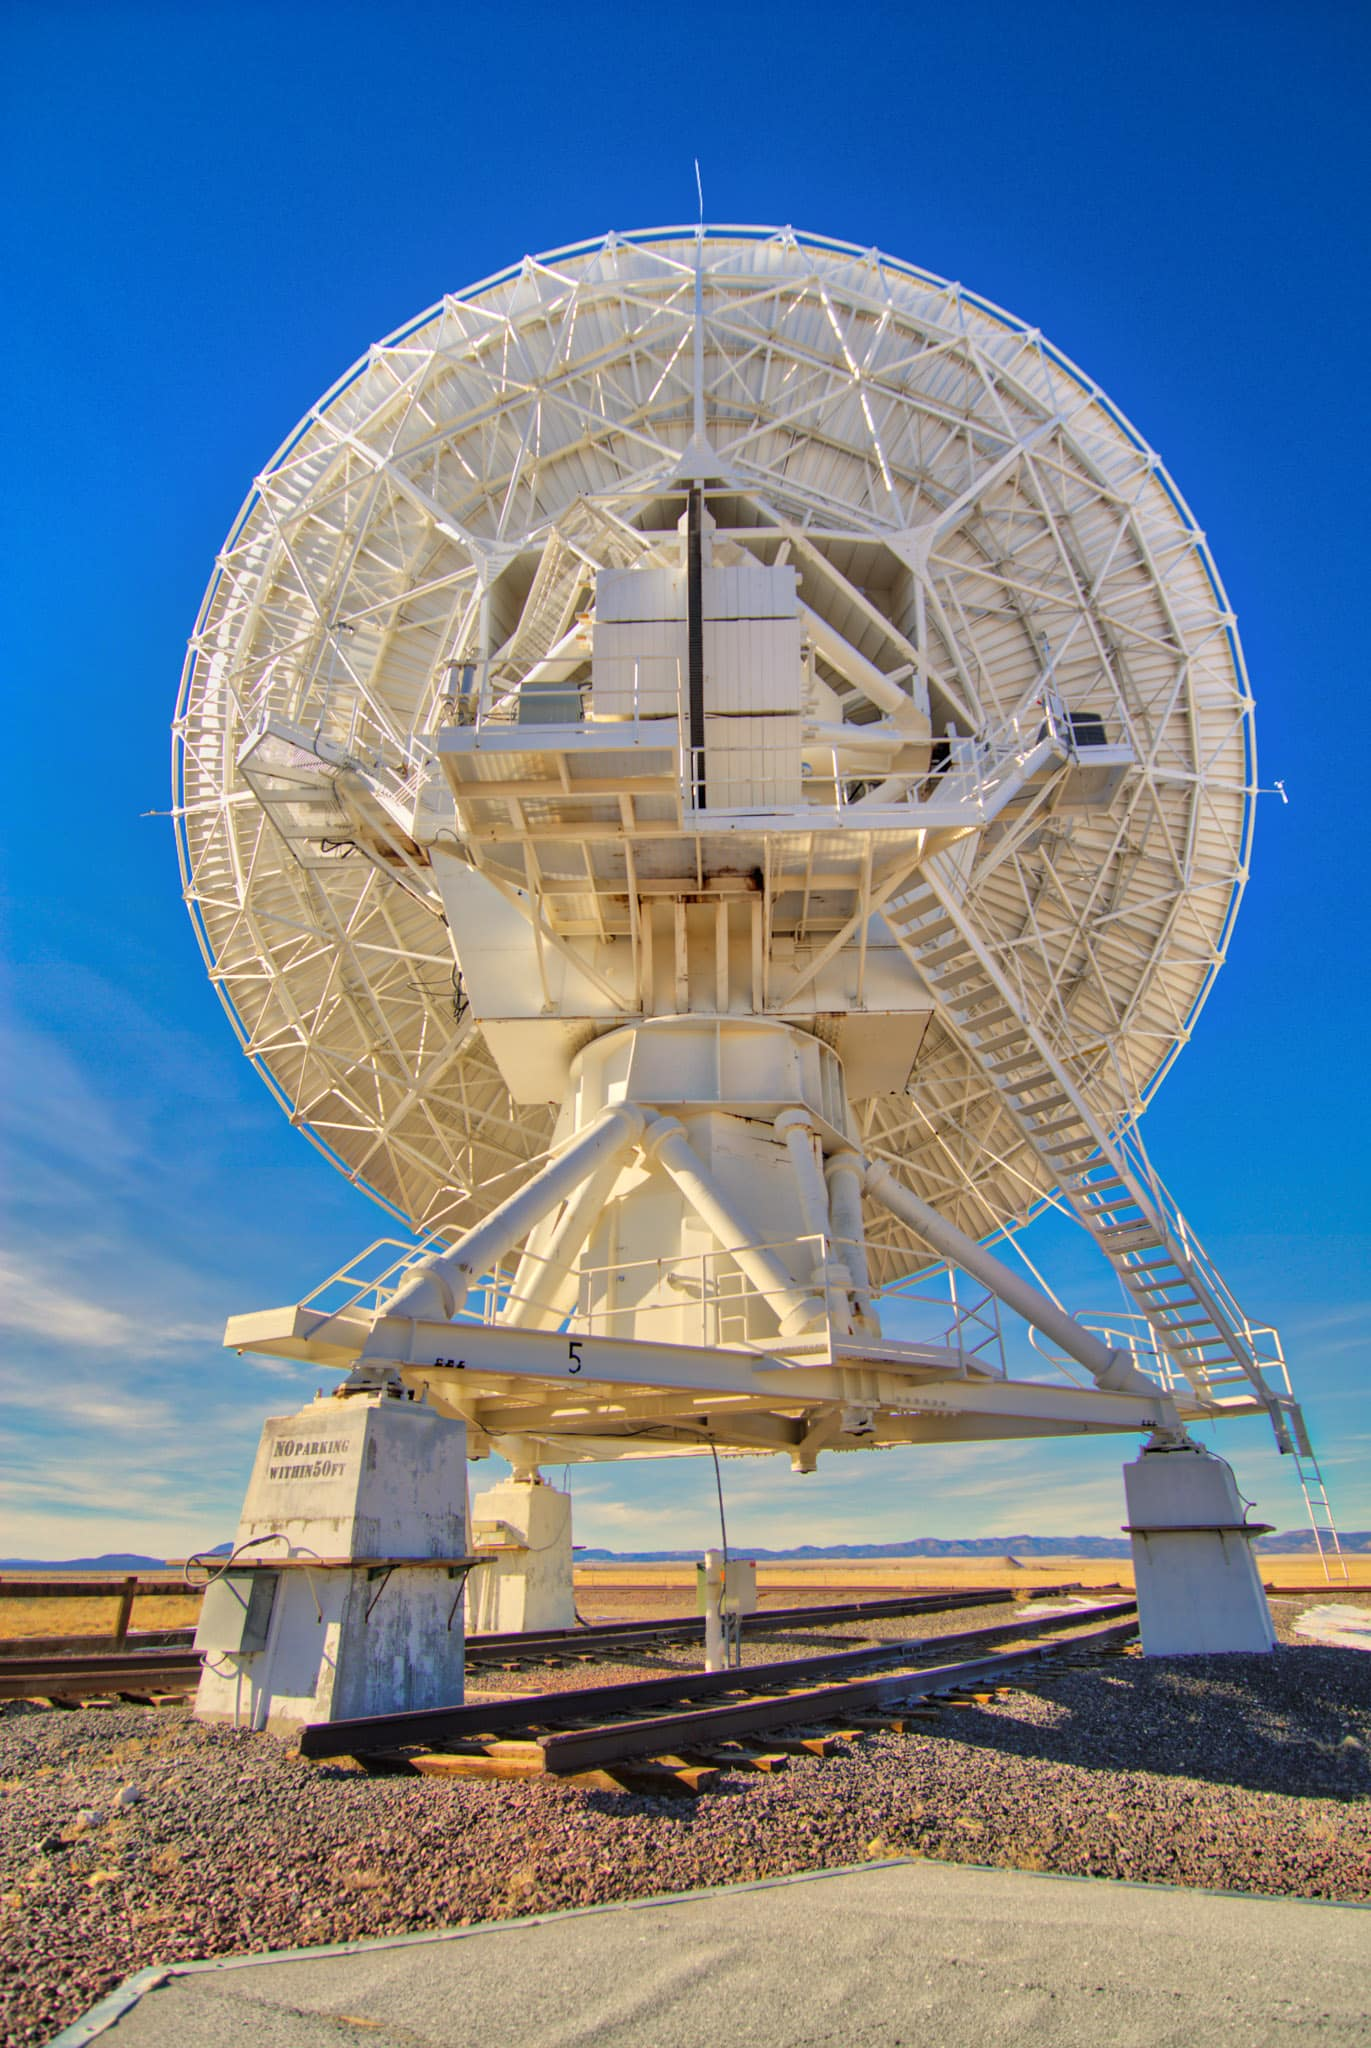 Antenna of the Very Large Array radio observatory, west of Socorro, New Mexico.